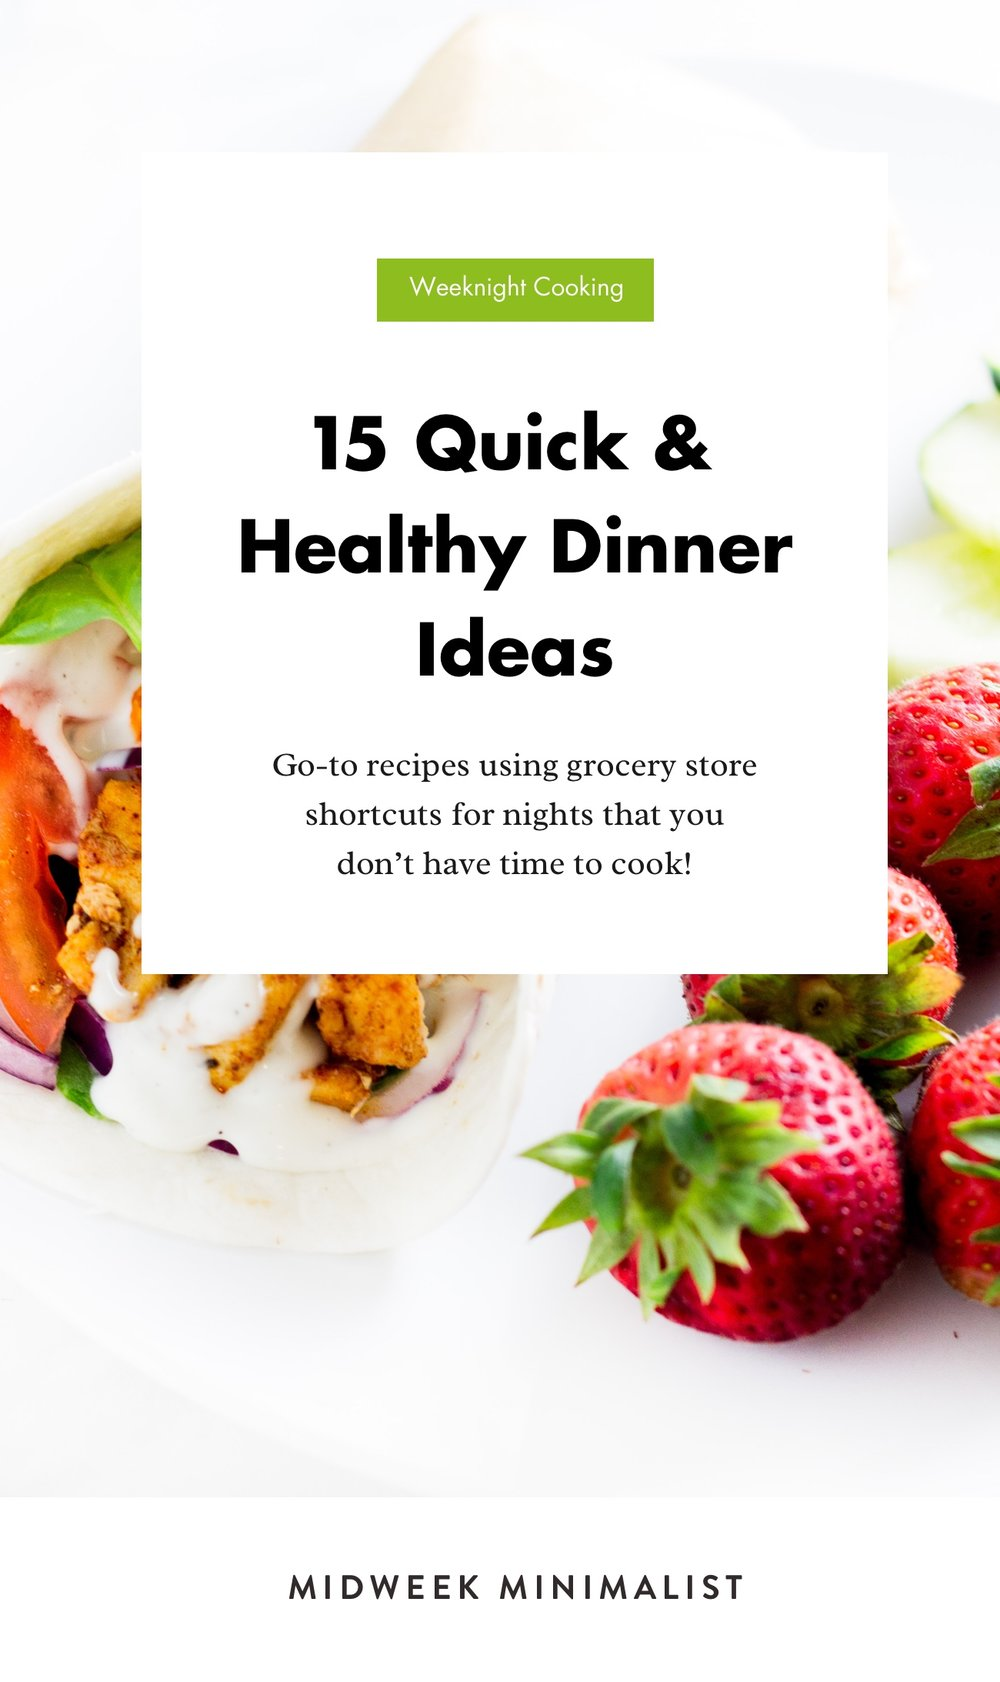 15 Quick & Healthy Dinner Ideas   Go-to recipes using grocery store shortcuts for nights that you don't have time to cook #midweekminmalist